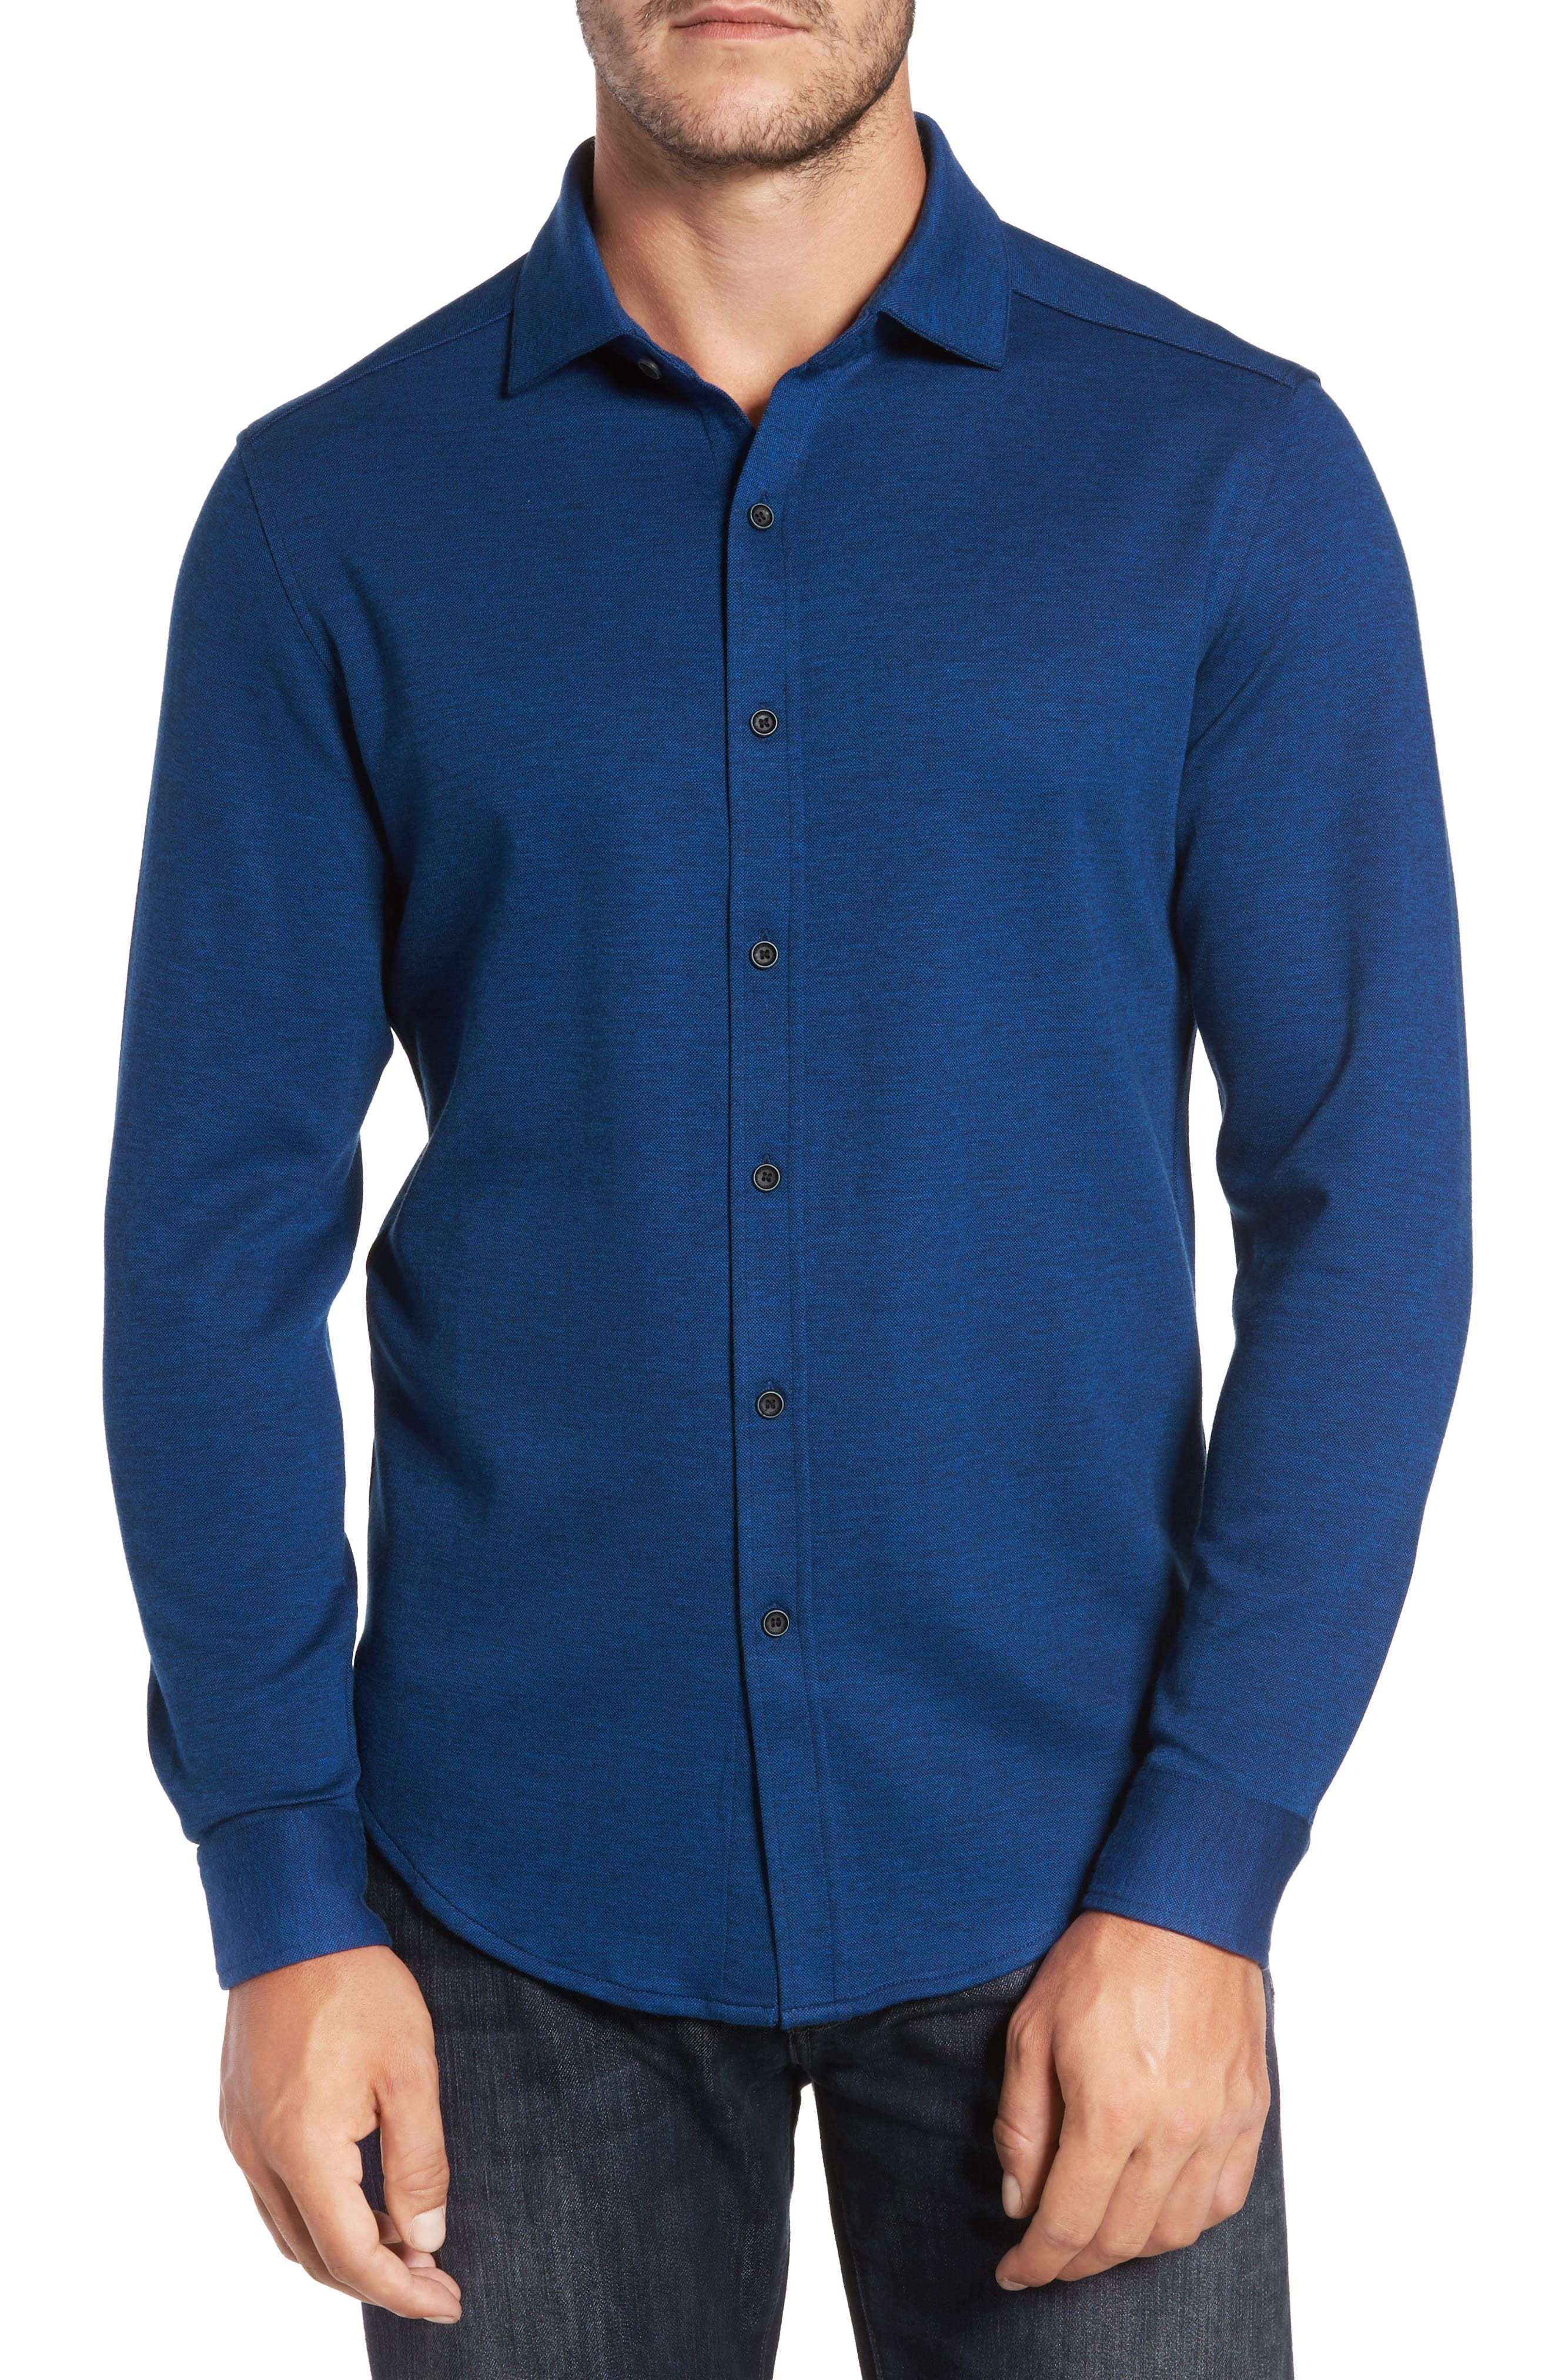 Bugatchi Trim Fit Heathered Knit Sport Shirt